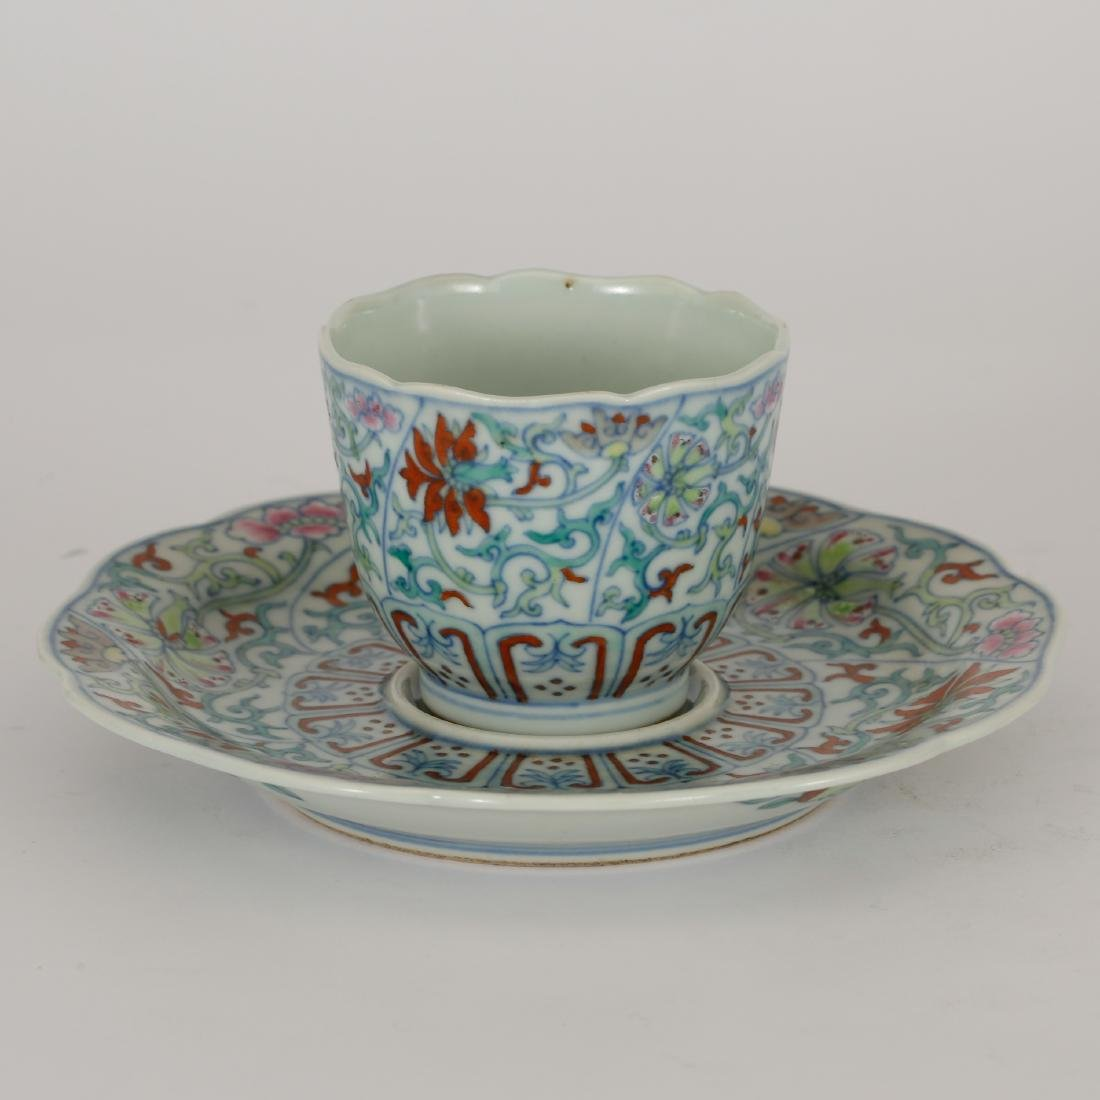 CHINESE DOUCAI CUP AND SAUCER